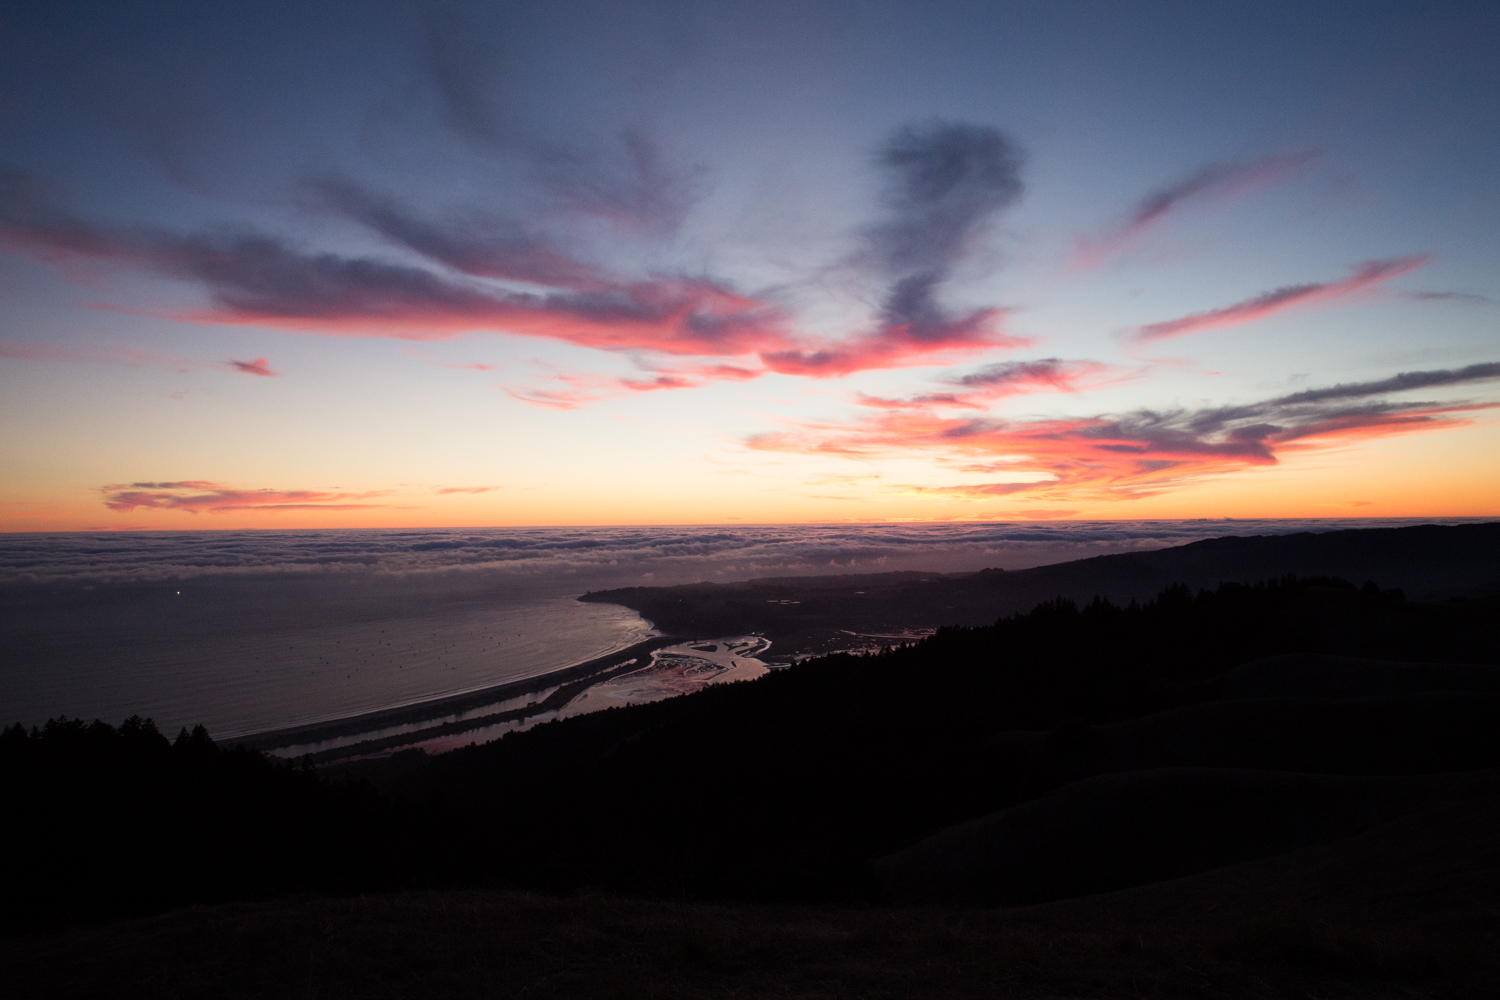 sunset from Mount Tam overlooking Bolinas Lagoon